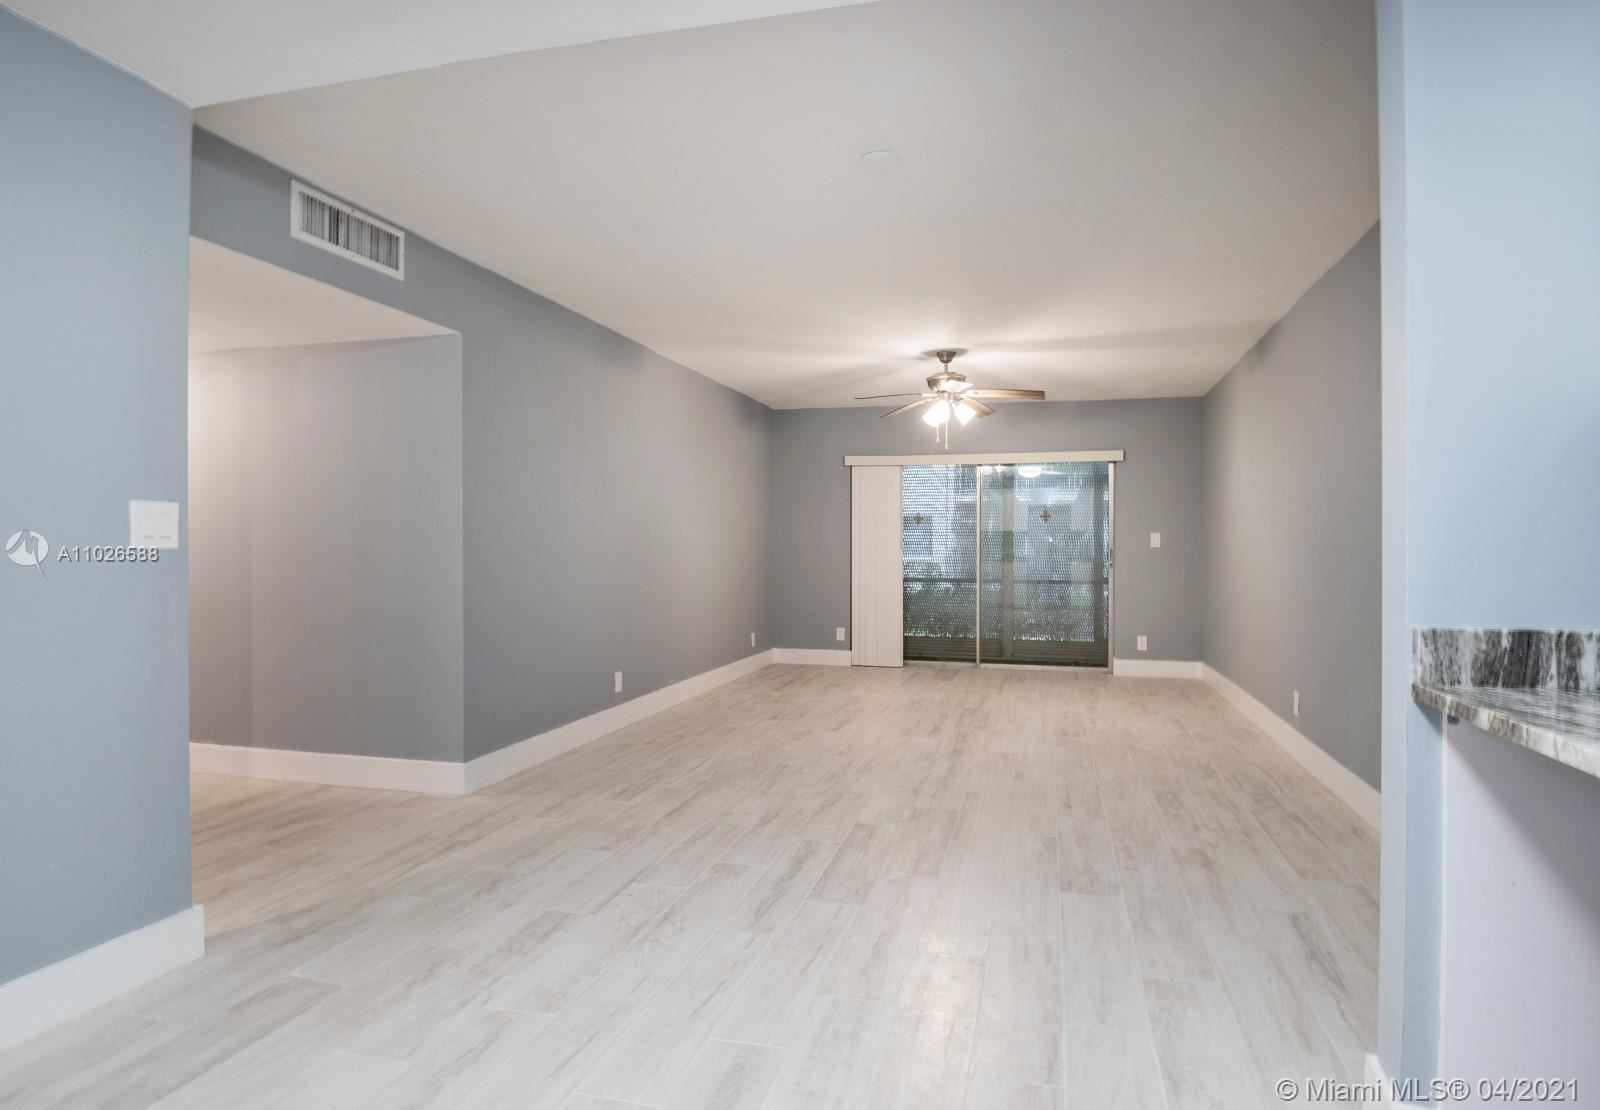 Photo of 4144 NW 90th Ave #104, Coral Springs, FL 33065 (MLS # A11026588)